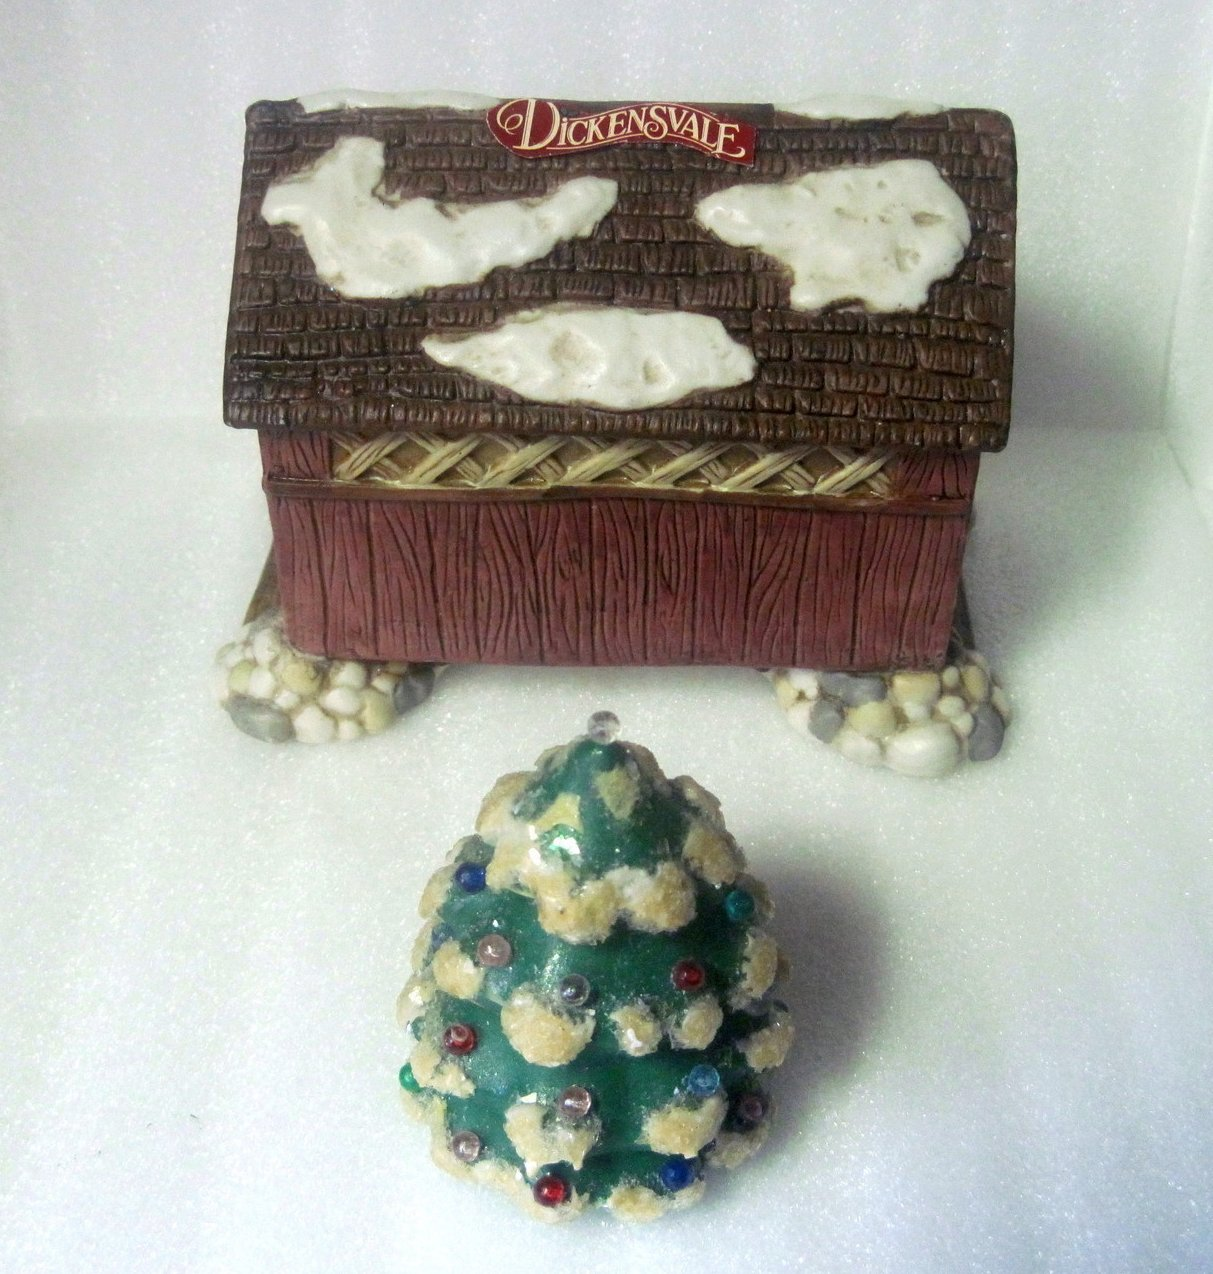 Dickensvale Porcelain Covered Bridge House of Lloyd 1992